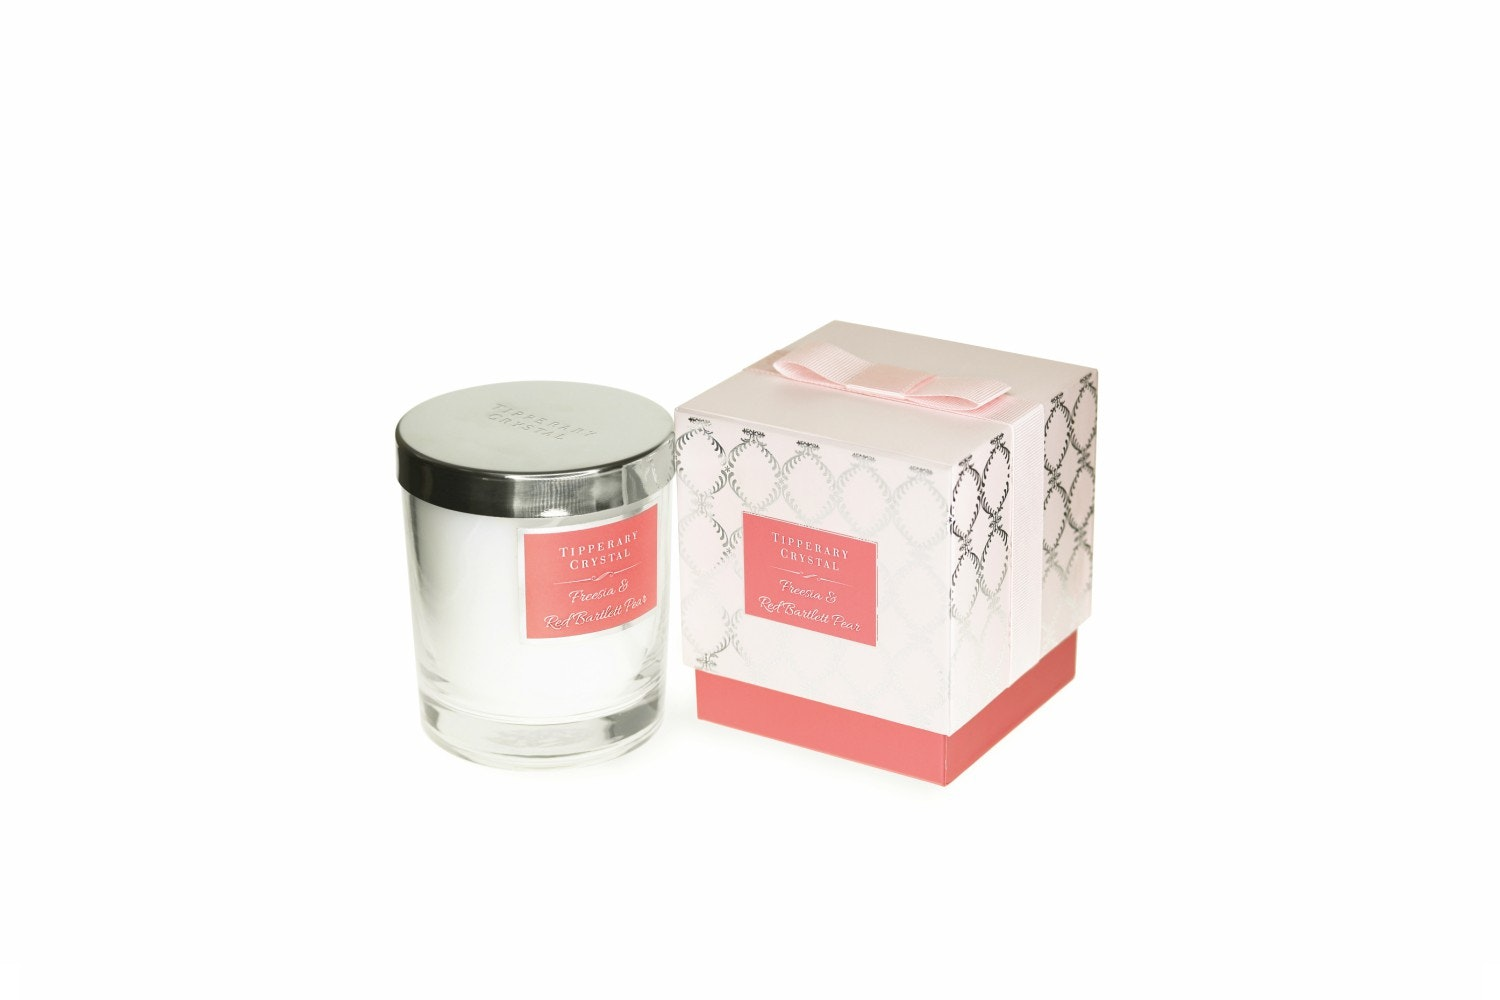 Tipperary Crystal Luxury Candle | Freesia & Red Bartlett Pear